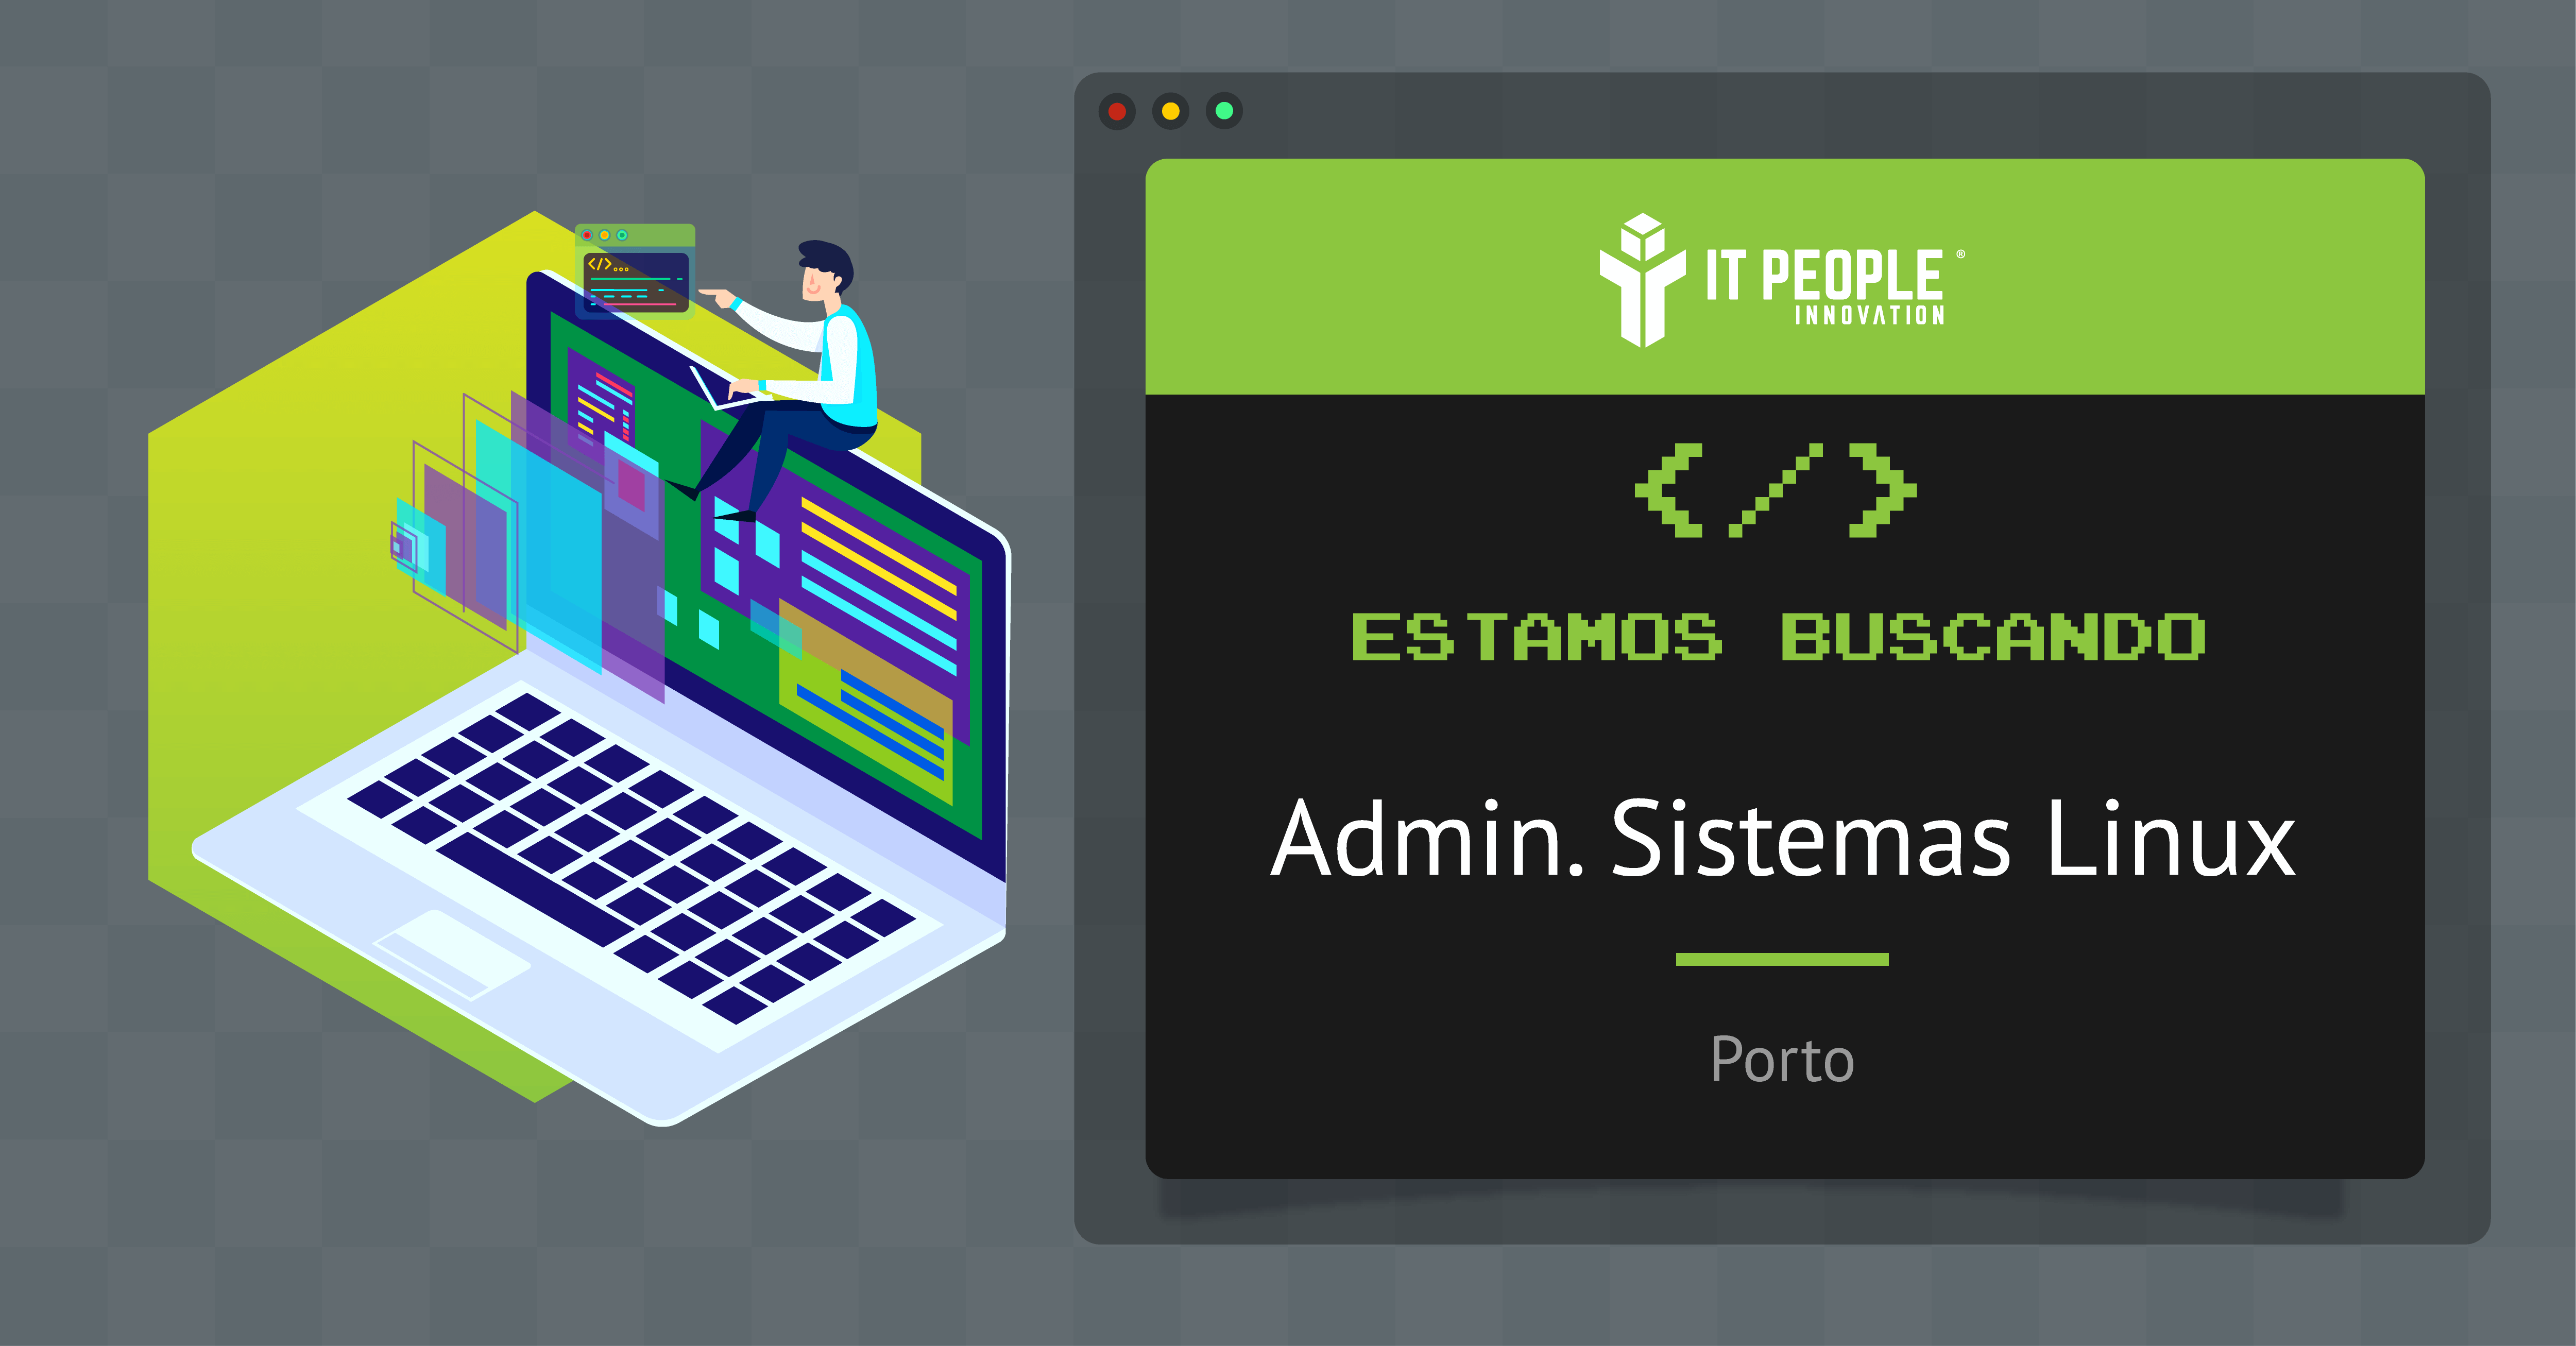 Proyecto para Admin Sistemas Linux - Porot - IT People Innovation